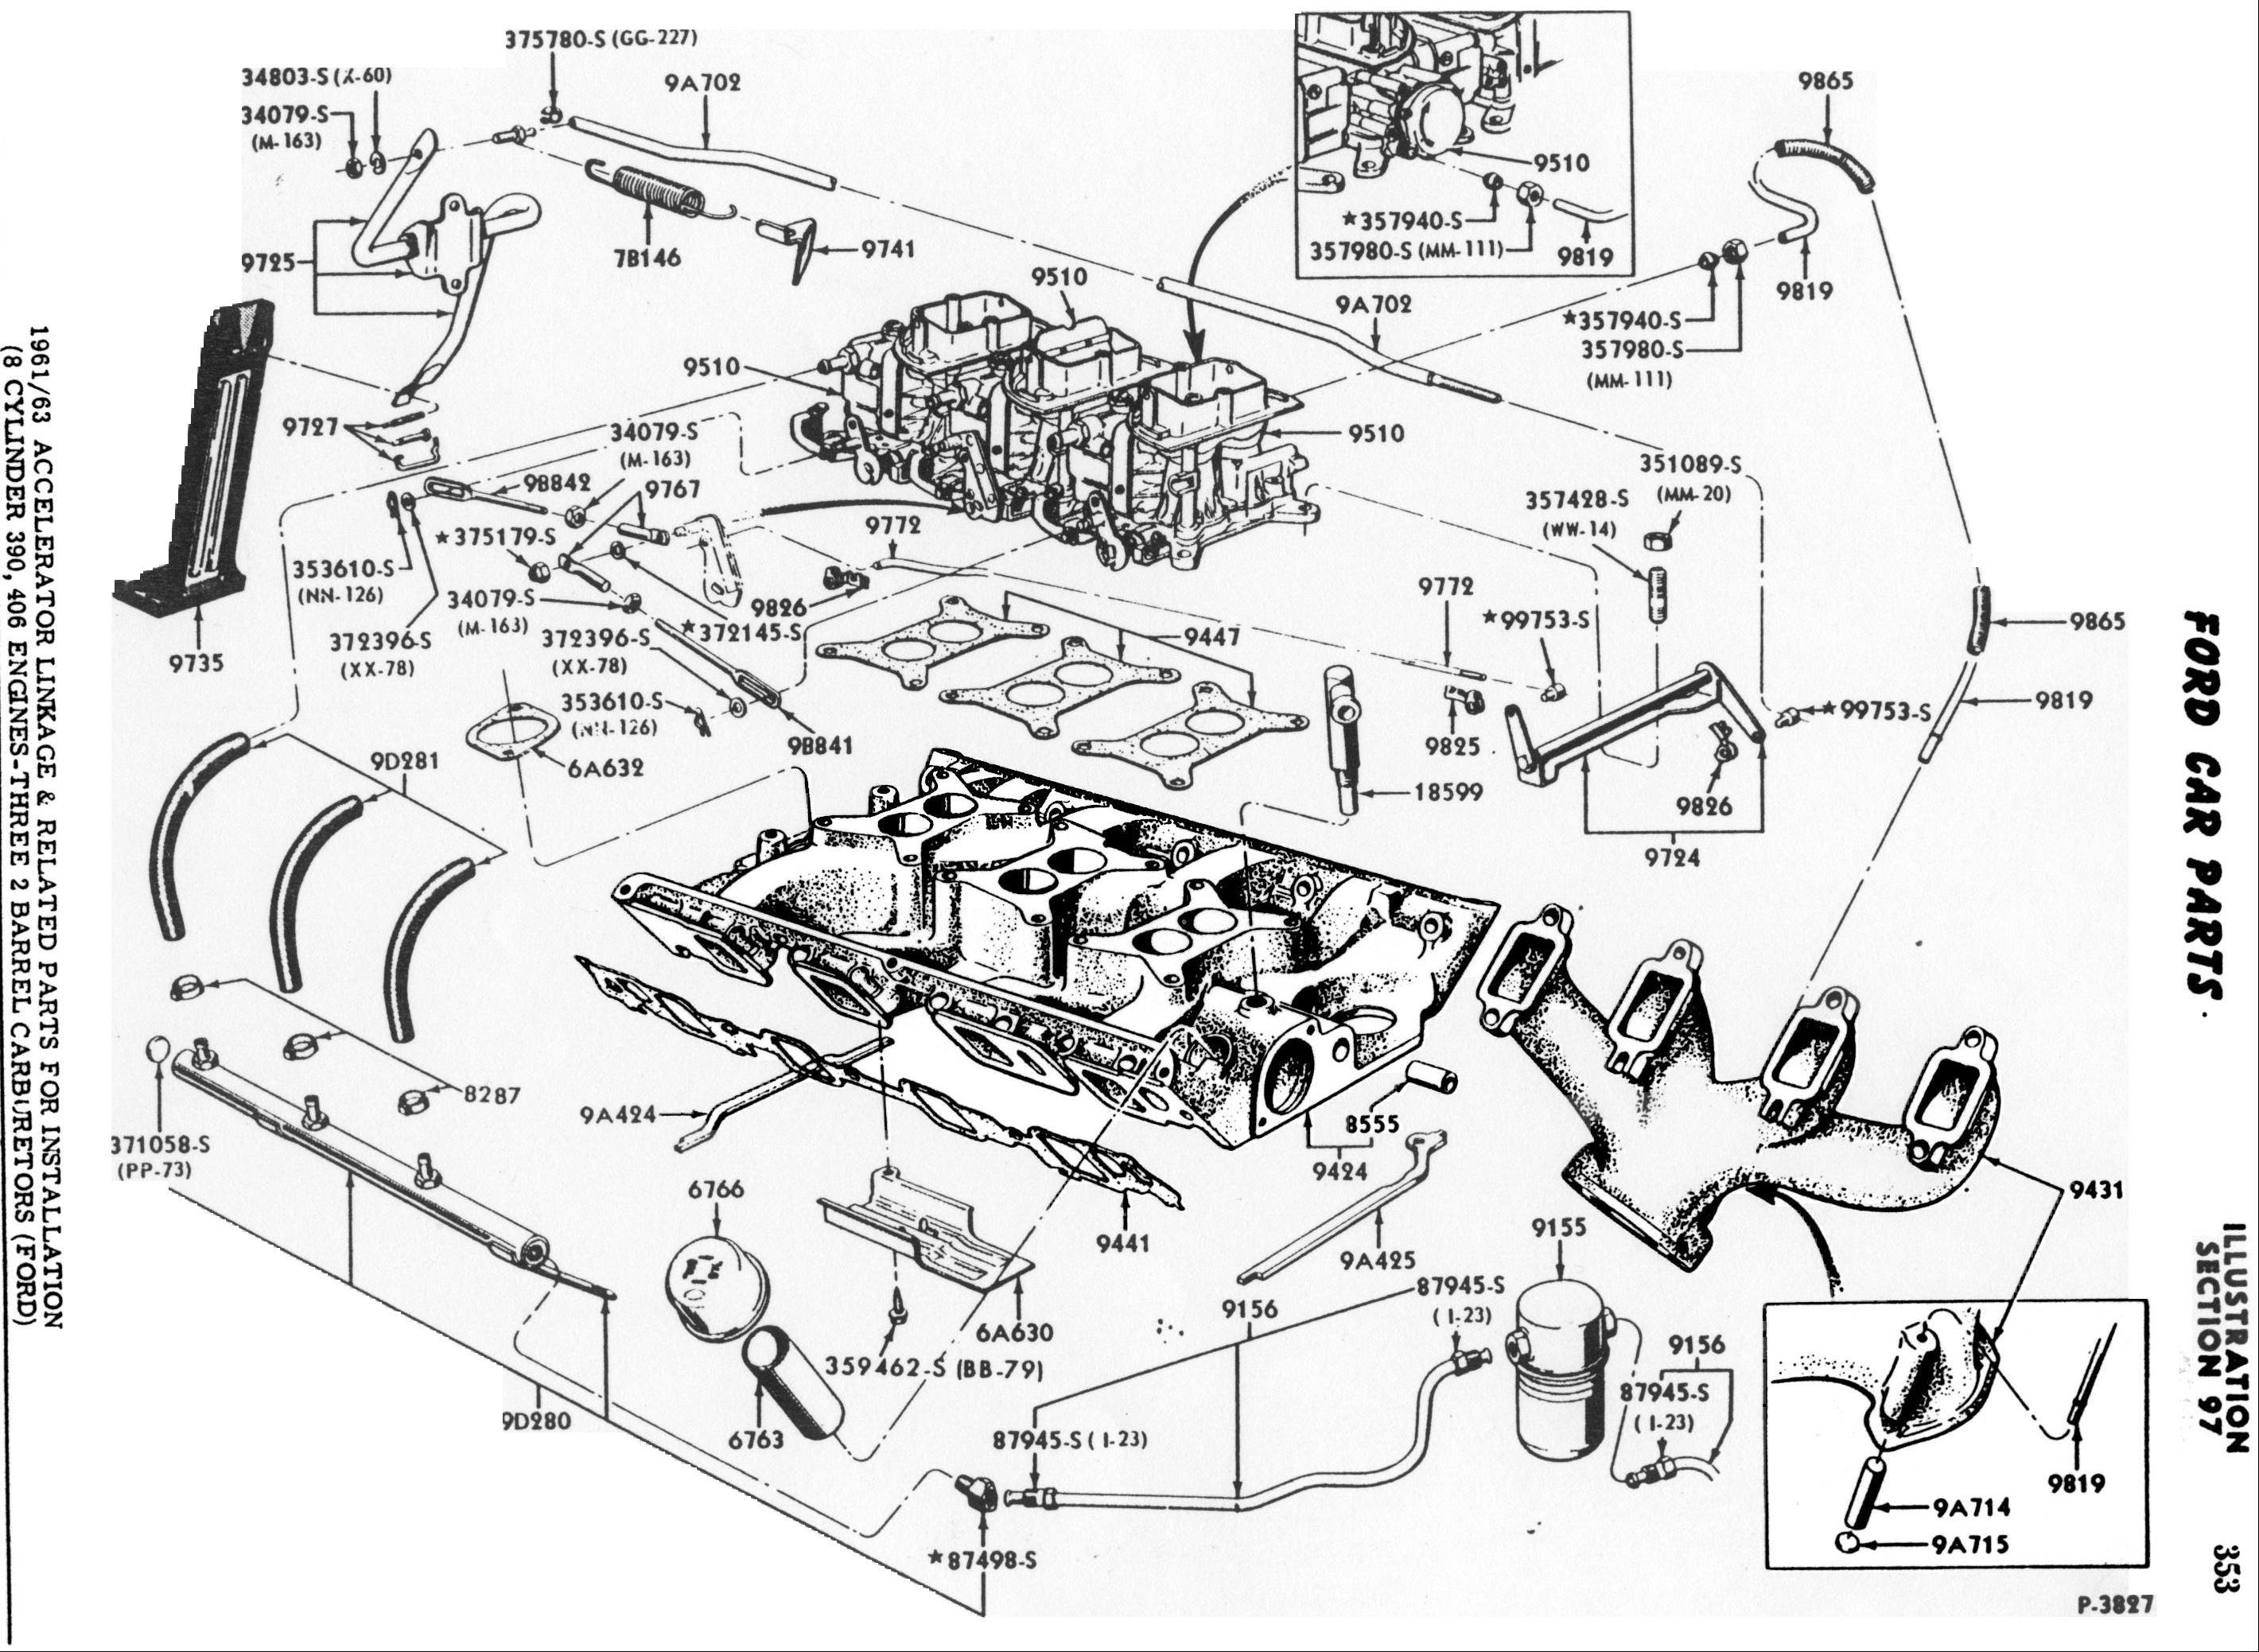 1972 ford maverick wiring diagram  ford  auto wiring diagram